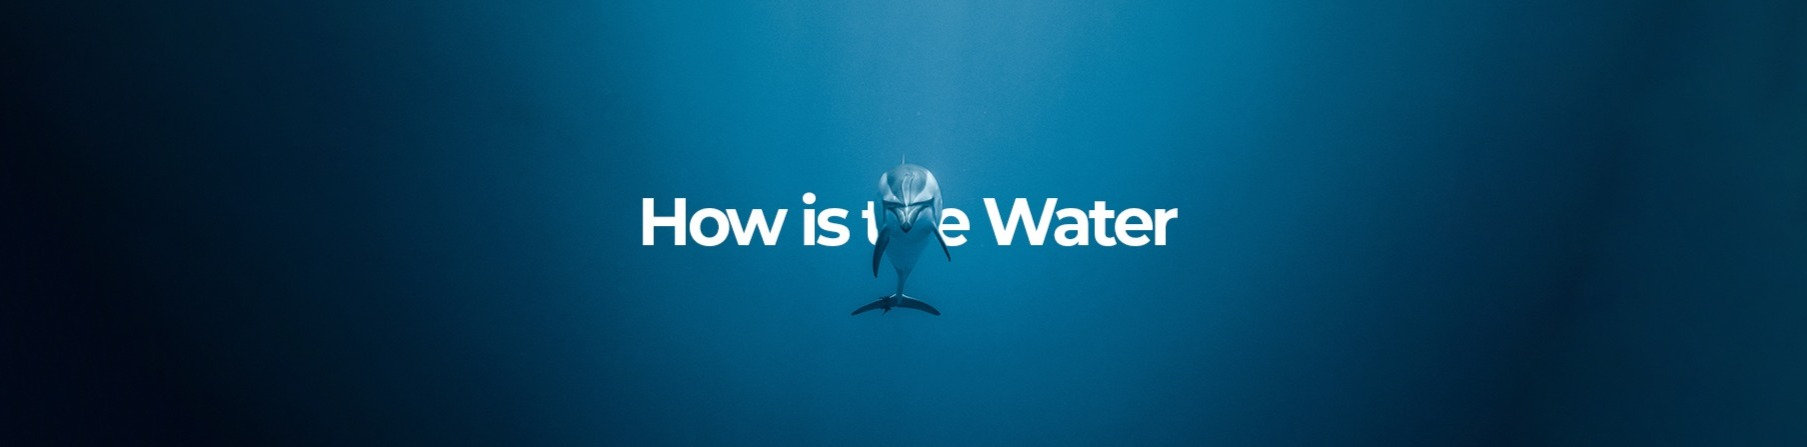 Howisthewater_banner_1920x640_new_edited